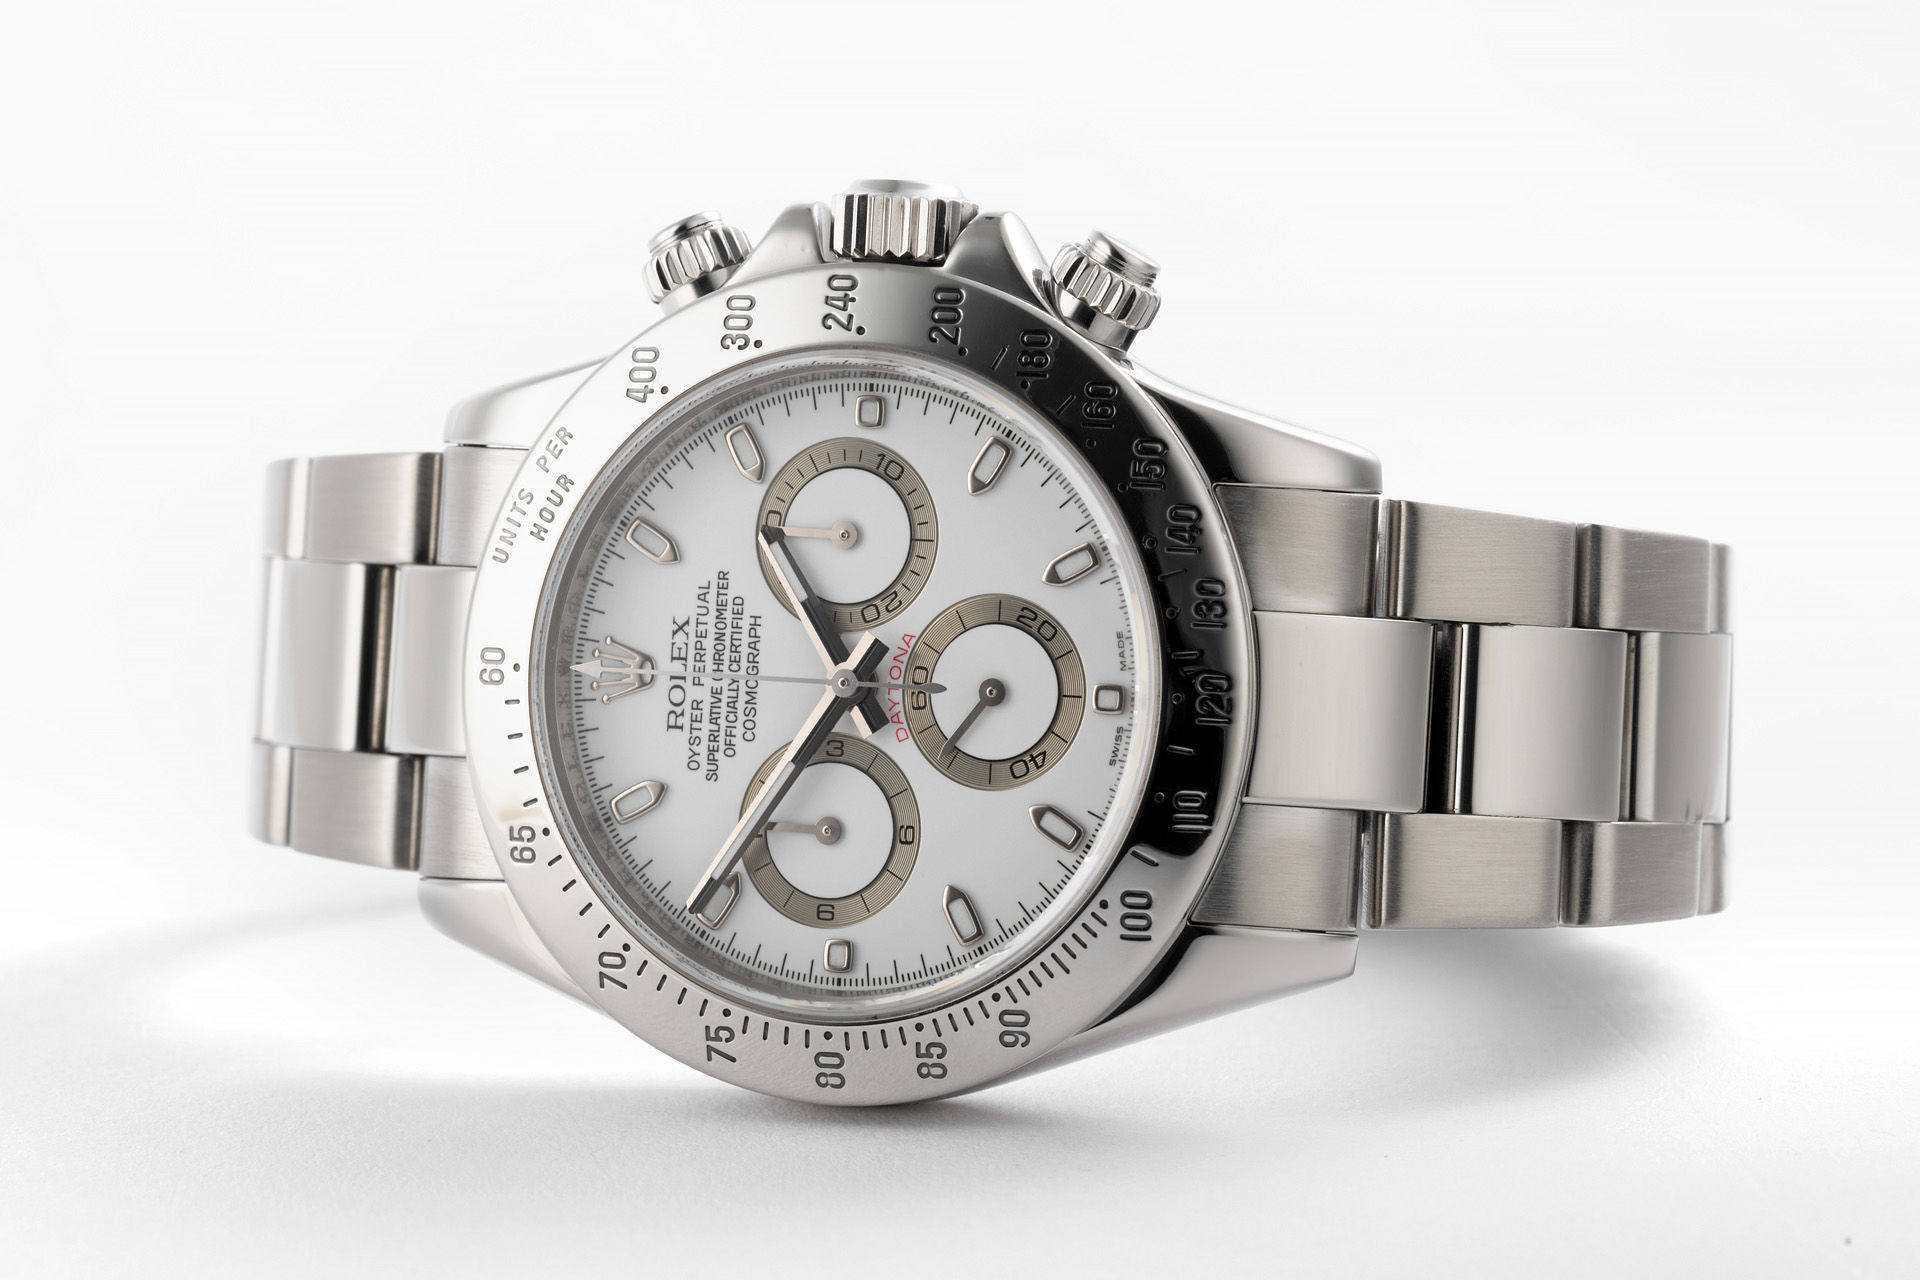 ref 116520 | 'Complete Set' Discontinued Model | Rolex Cosmograph Daytona